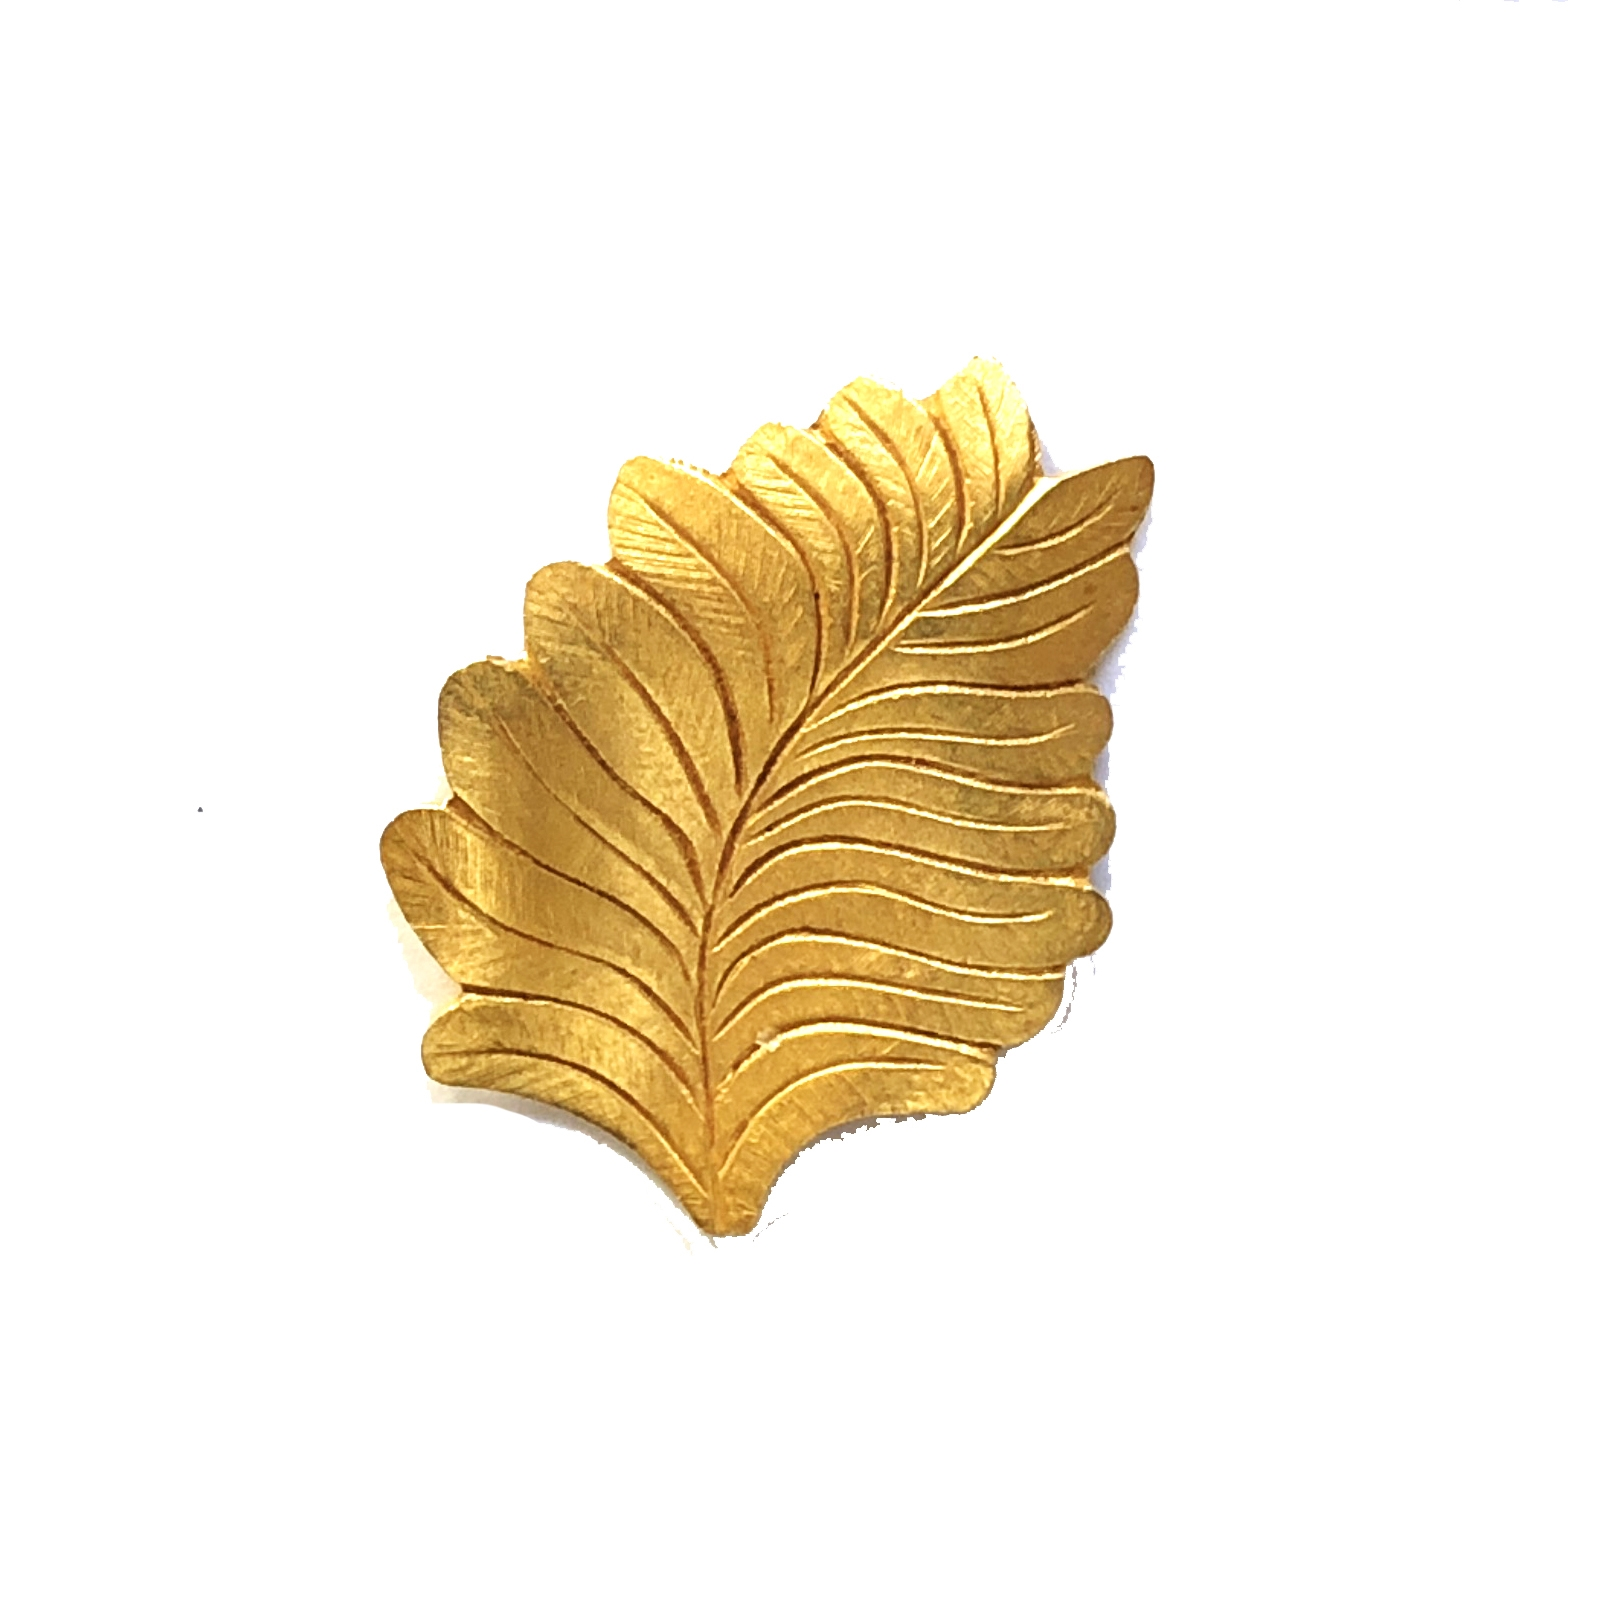 vintage style leaf stamping, double sided, leaf, stamping, classic gold, cinnamon accents, antique gold, brass, US made, 27x21mm, vintage style, brass stamping, jewelry making, vintage supplies, jewelry supplies, B'sue Boutiques, 08489